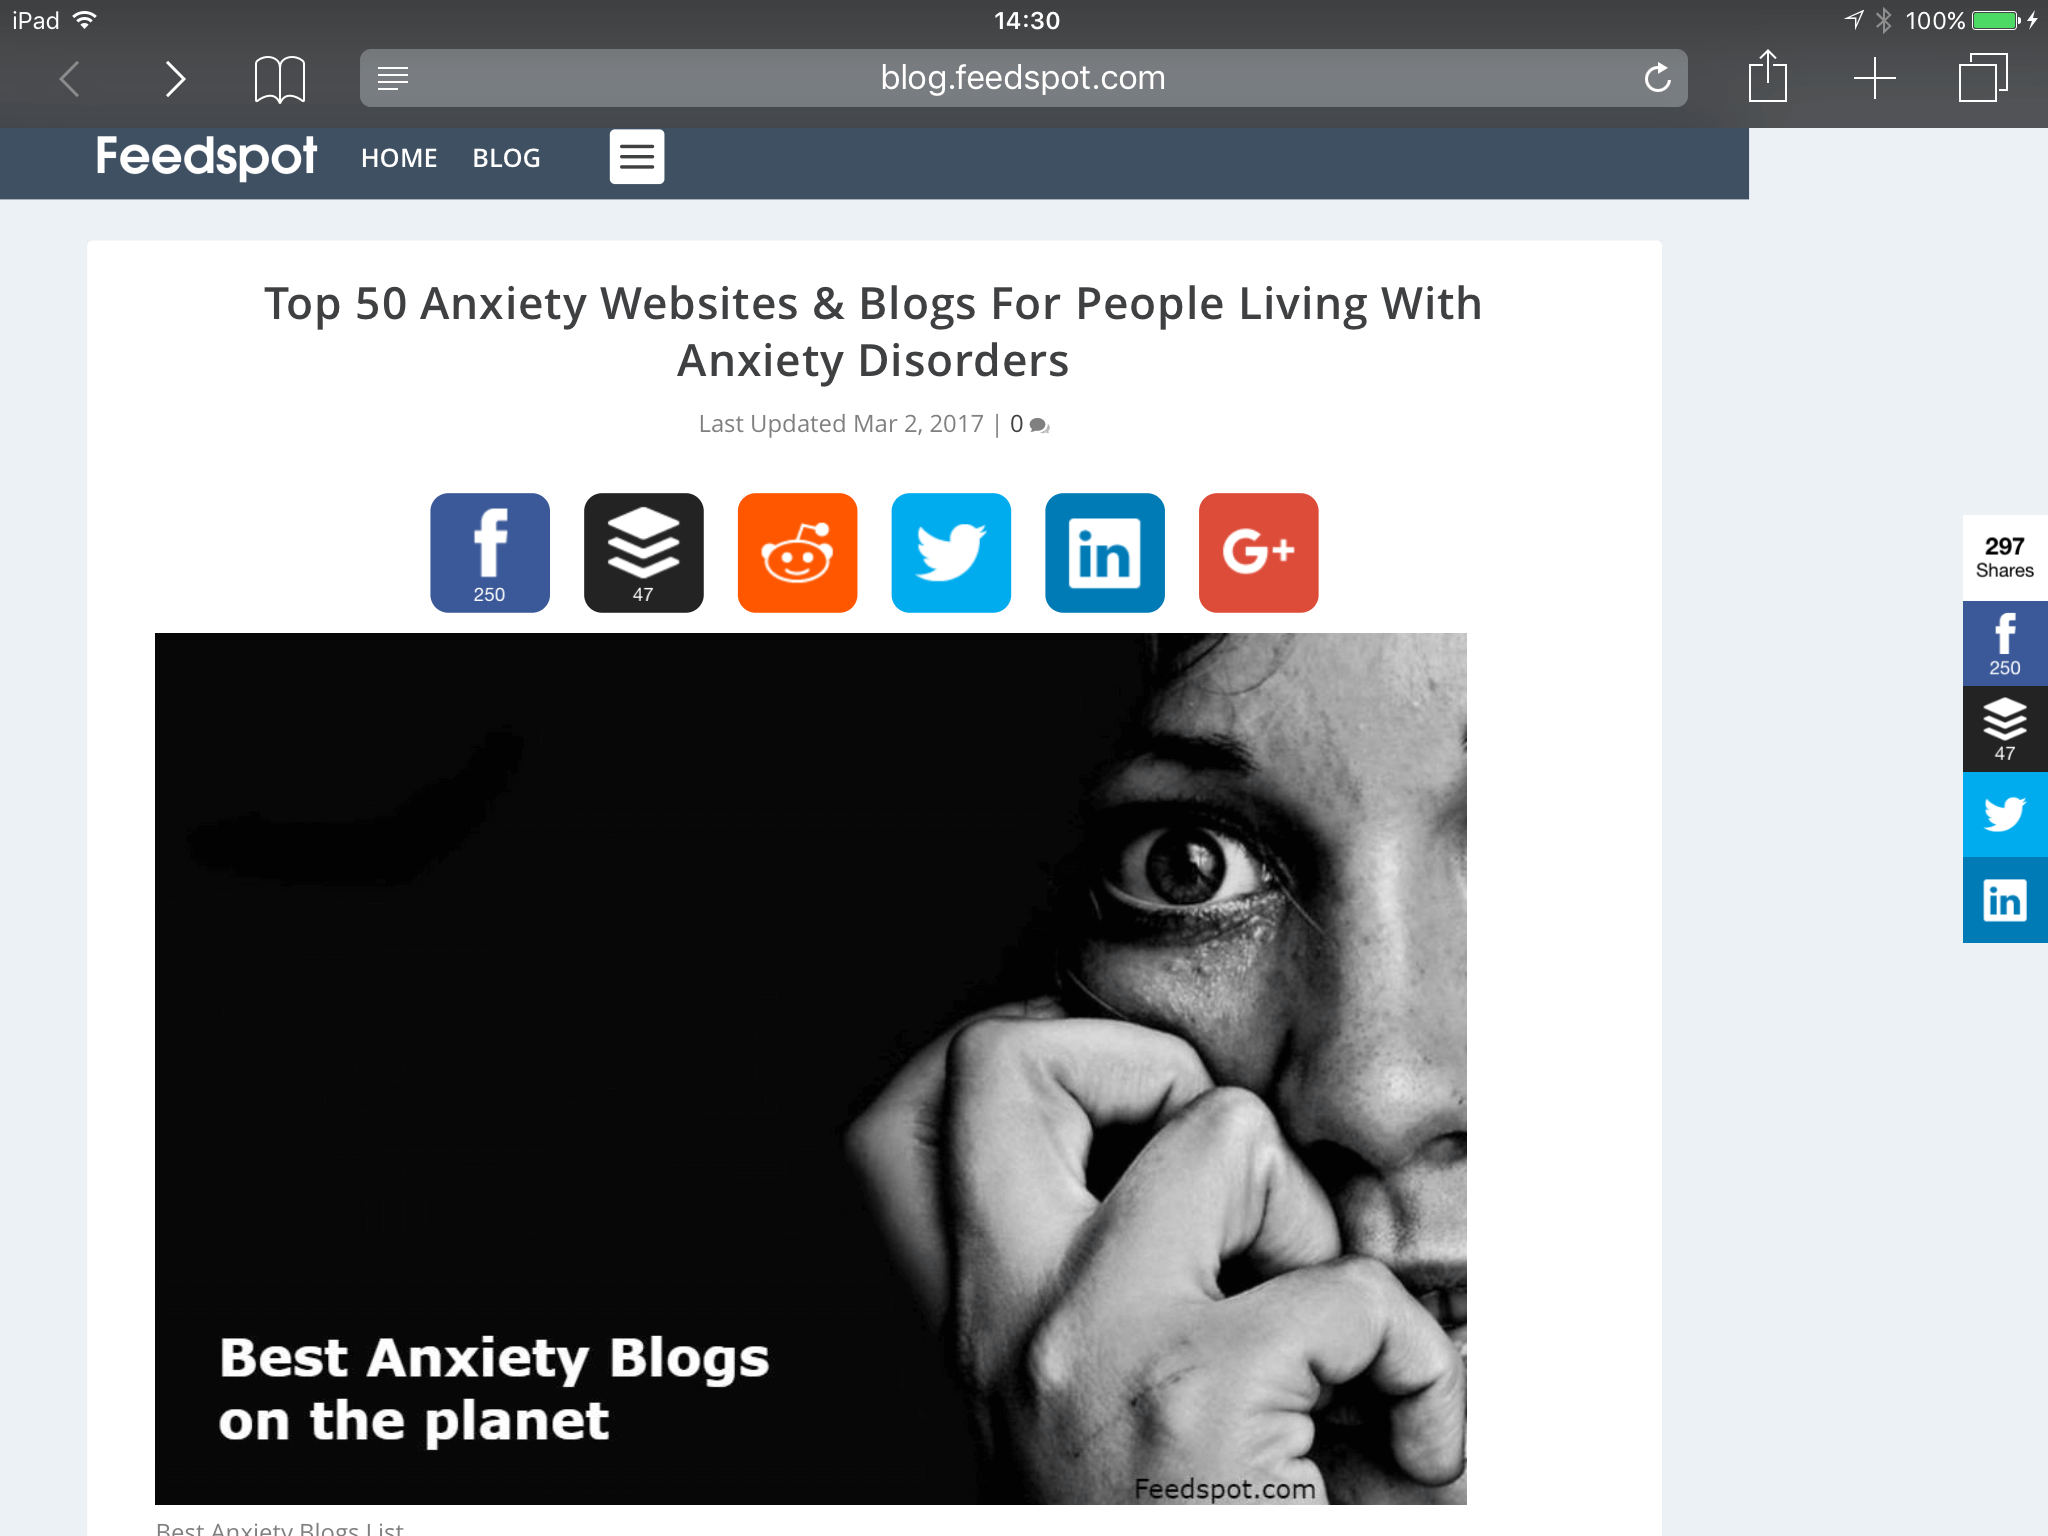 top 50 anxiety blogs feedspot